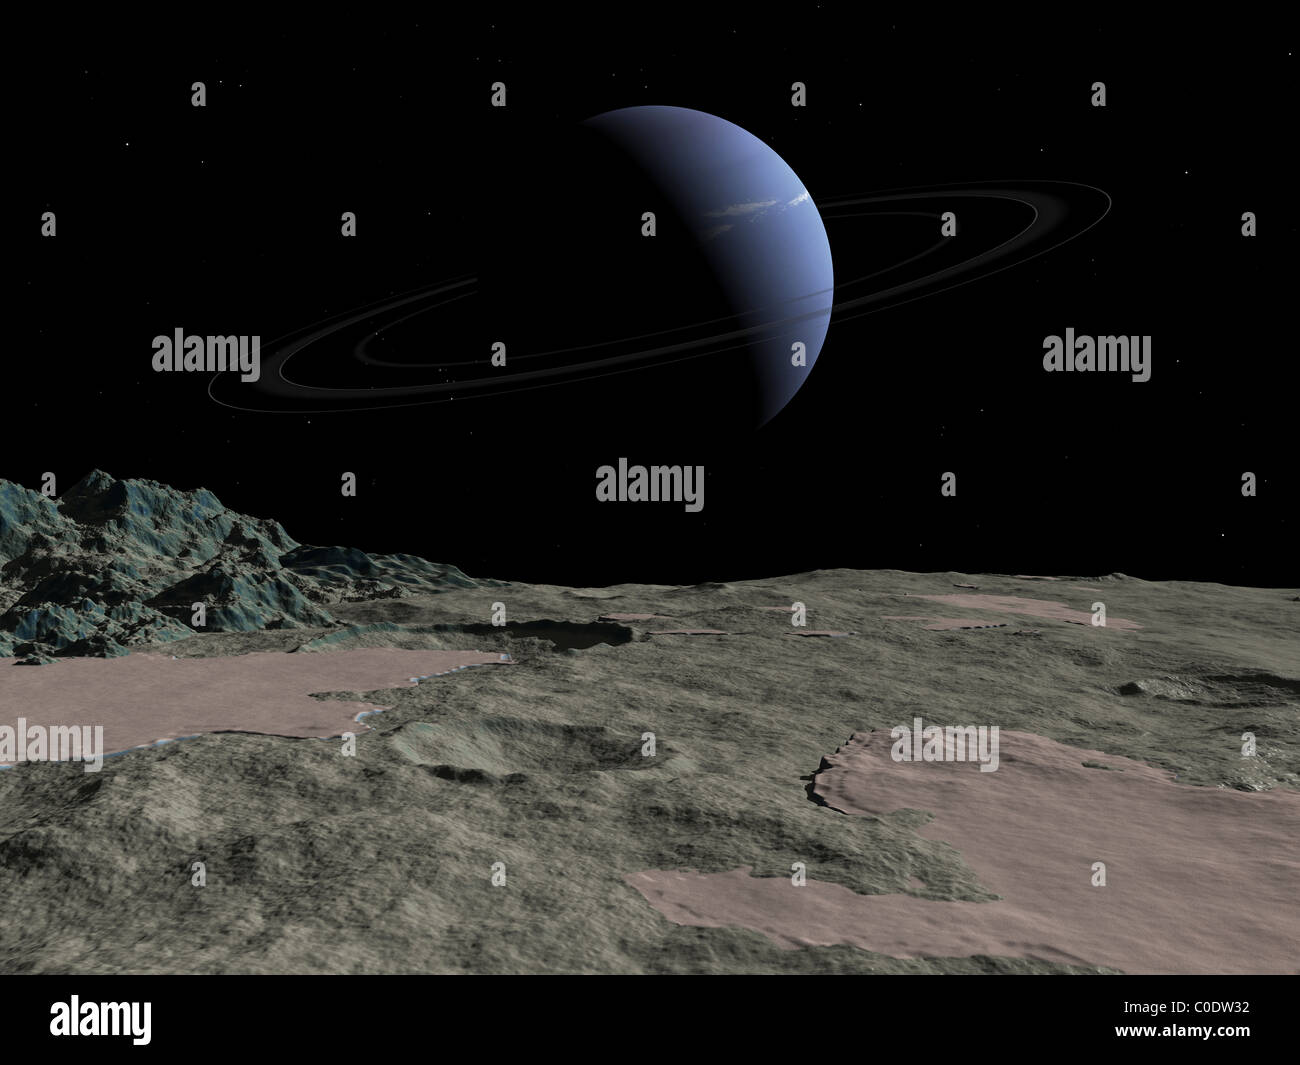 Illustration of the gas giant Neptune as seen from the surface of its moon Triton. - Stock Image